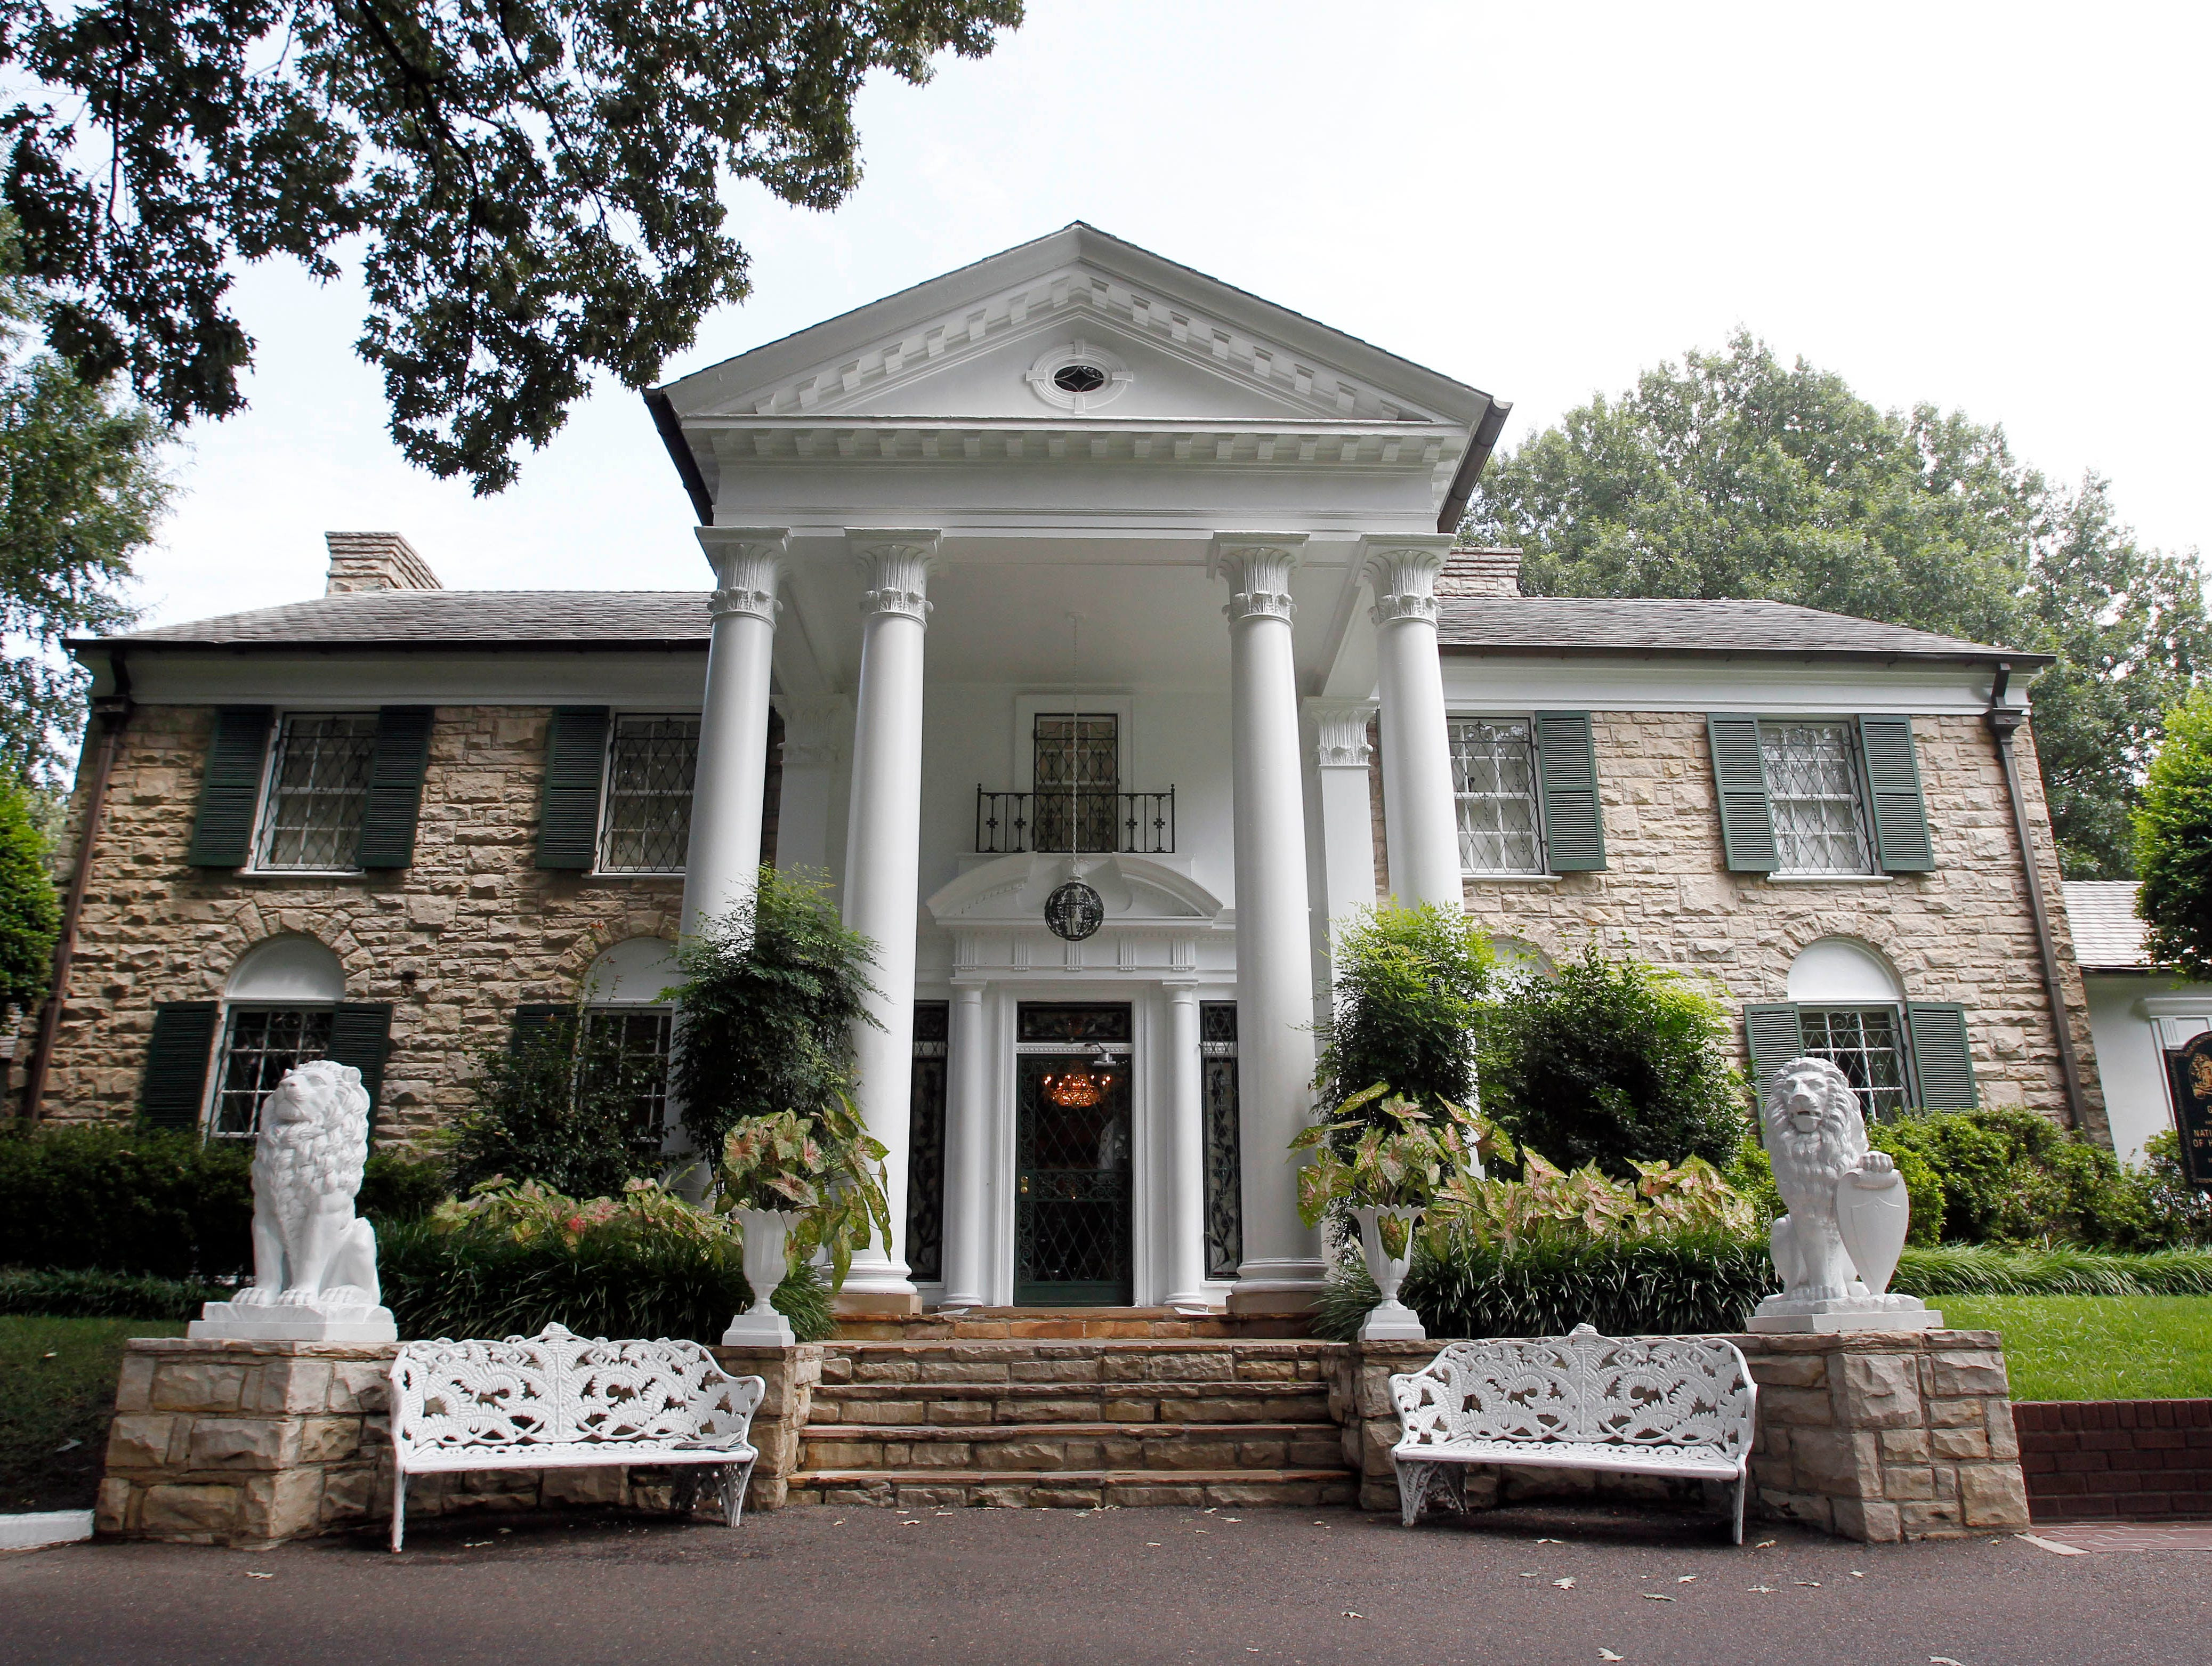 600,000 | Annual visitors to Graceland, his Memphis home, which opened for tours June 7, 1982.